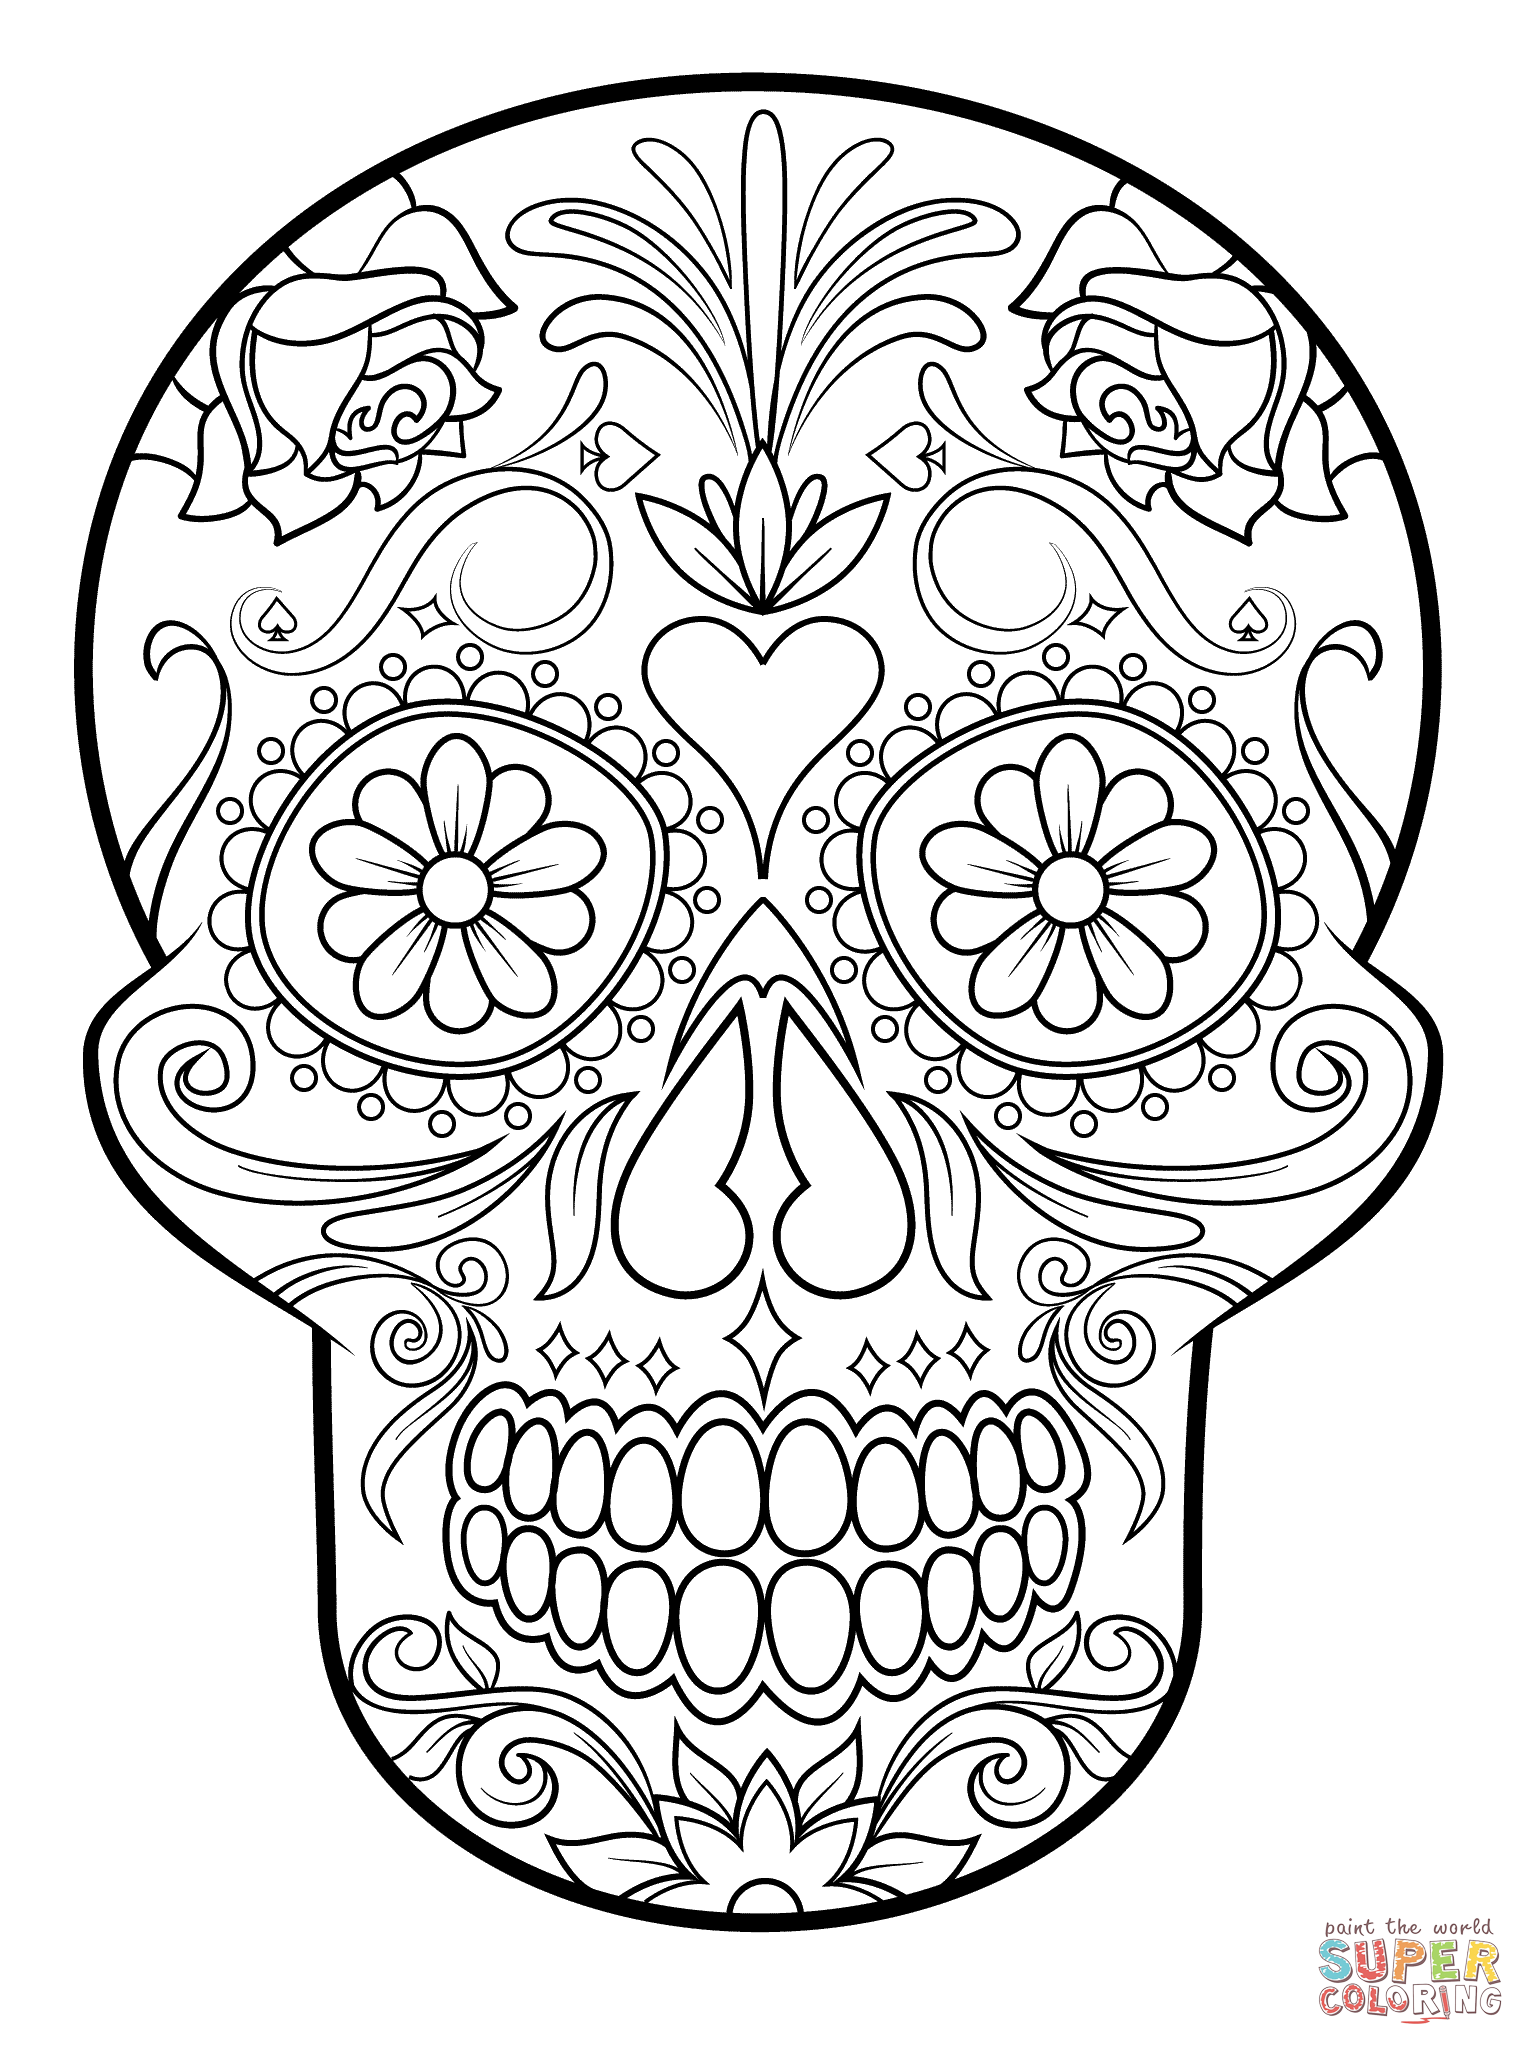 Sugar skull super coloring